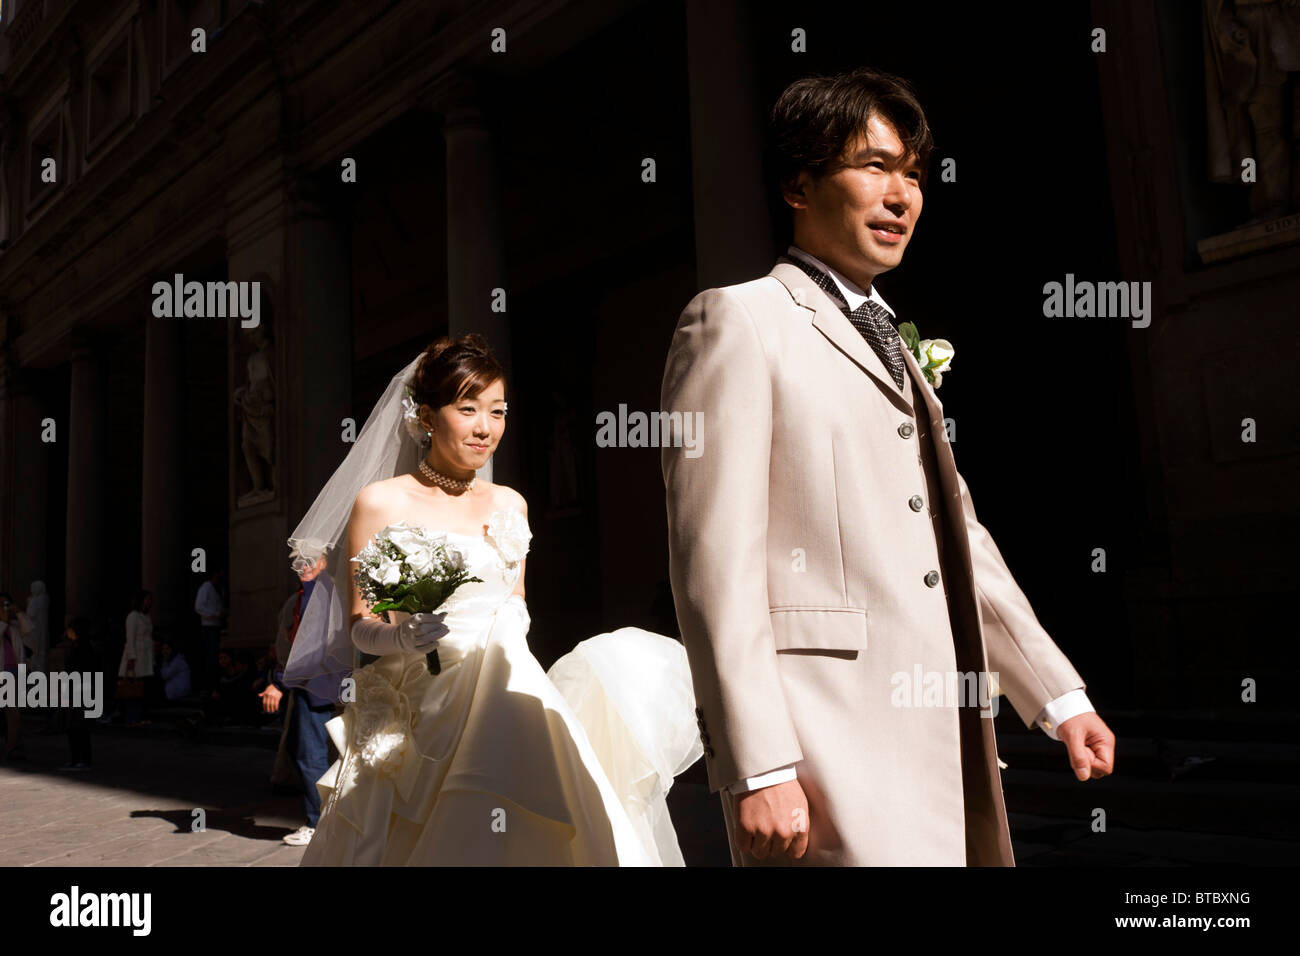 Chinese bride walks behind her new husband during photo shoot walk in Florence's Piazza degli Uffizi. - Stock Image